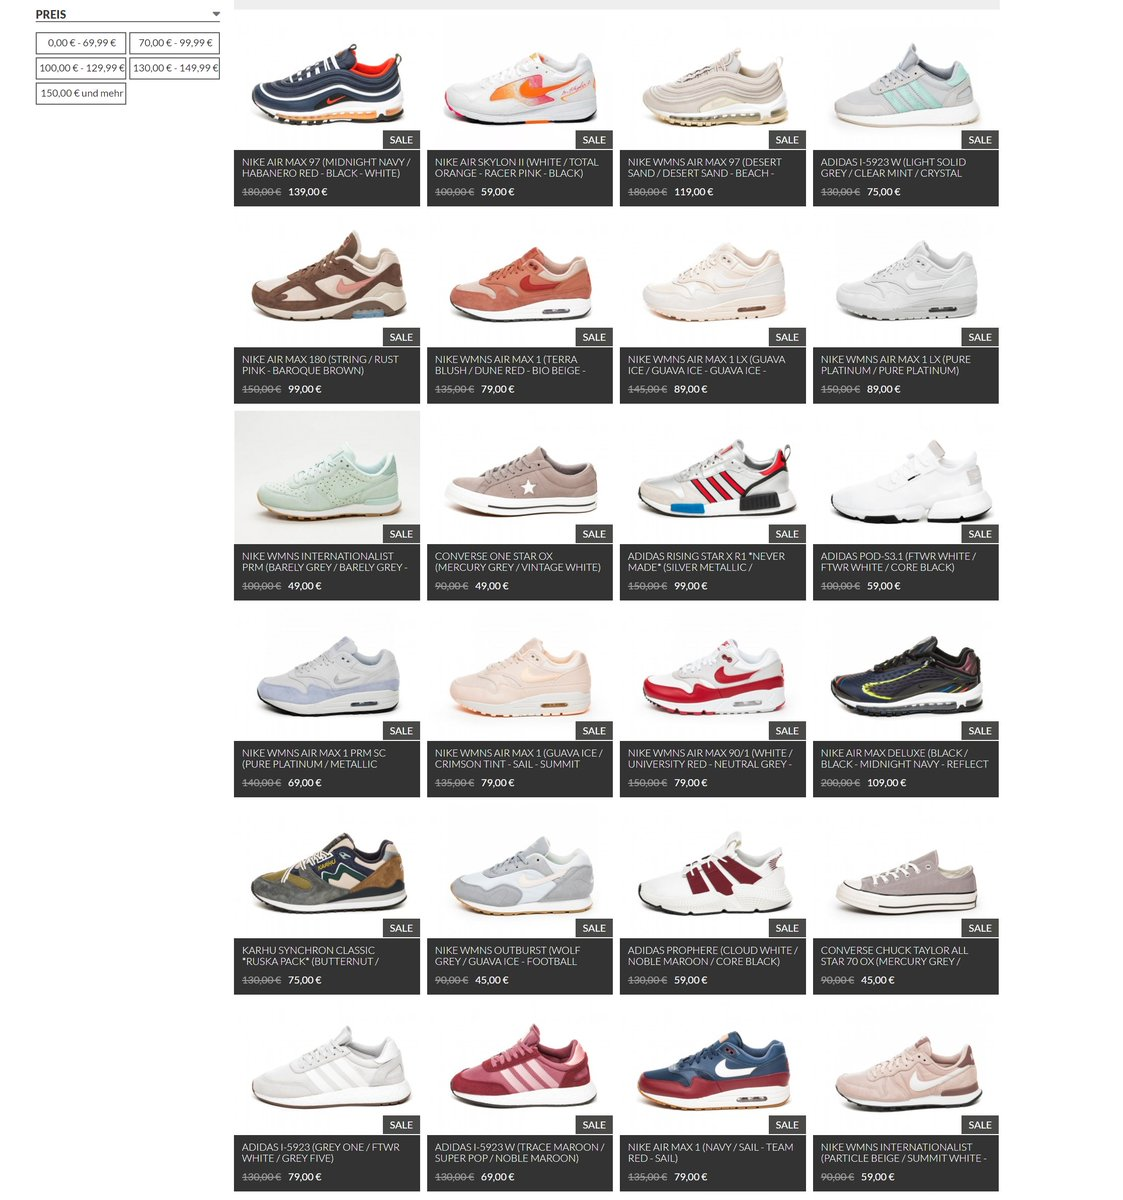 MoreSneakers.com on Twitter